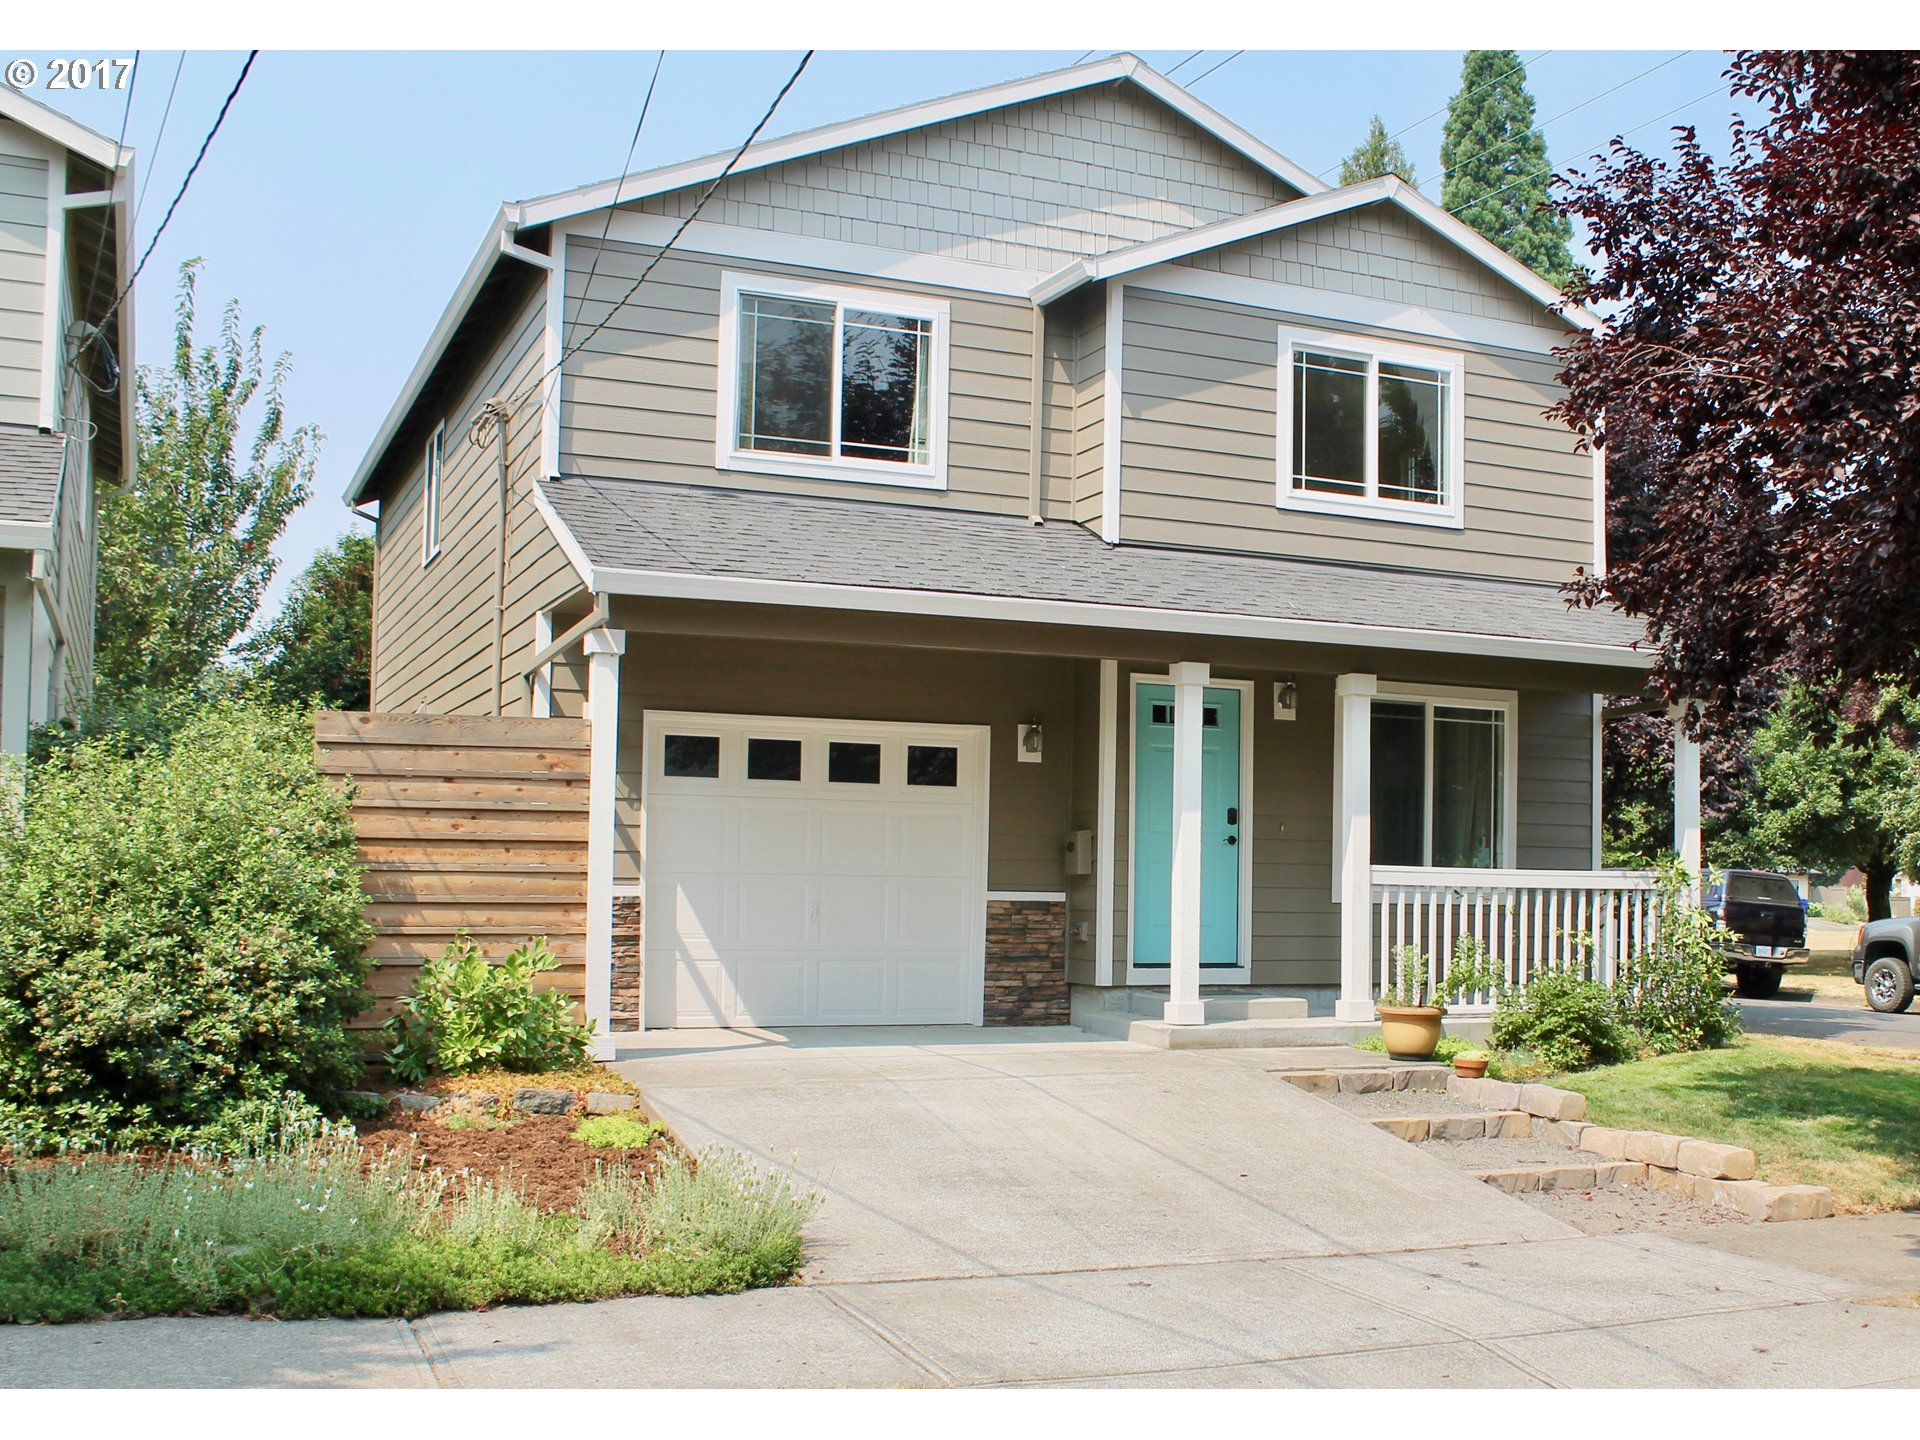 Beautiful N. PDX home in desirable Kenton Neighborhood! Fresh exterior paint and newer laminate floors make this 4 bedroom 2.5 bath home on a corner lot across from Trenton Park a must see! Floor plan provides large bedrooms and living areas. A peaceful backyard oasis includes patio, grape vines, garden area, and fruit trees. With a bike score of 84 and room for the whole family, this home is as comfortable as it is convenient!